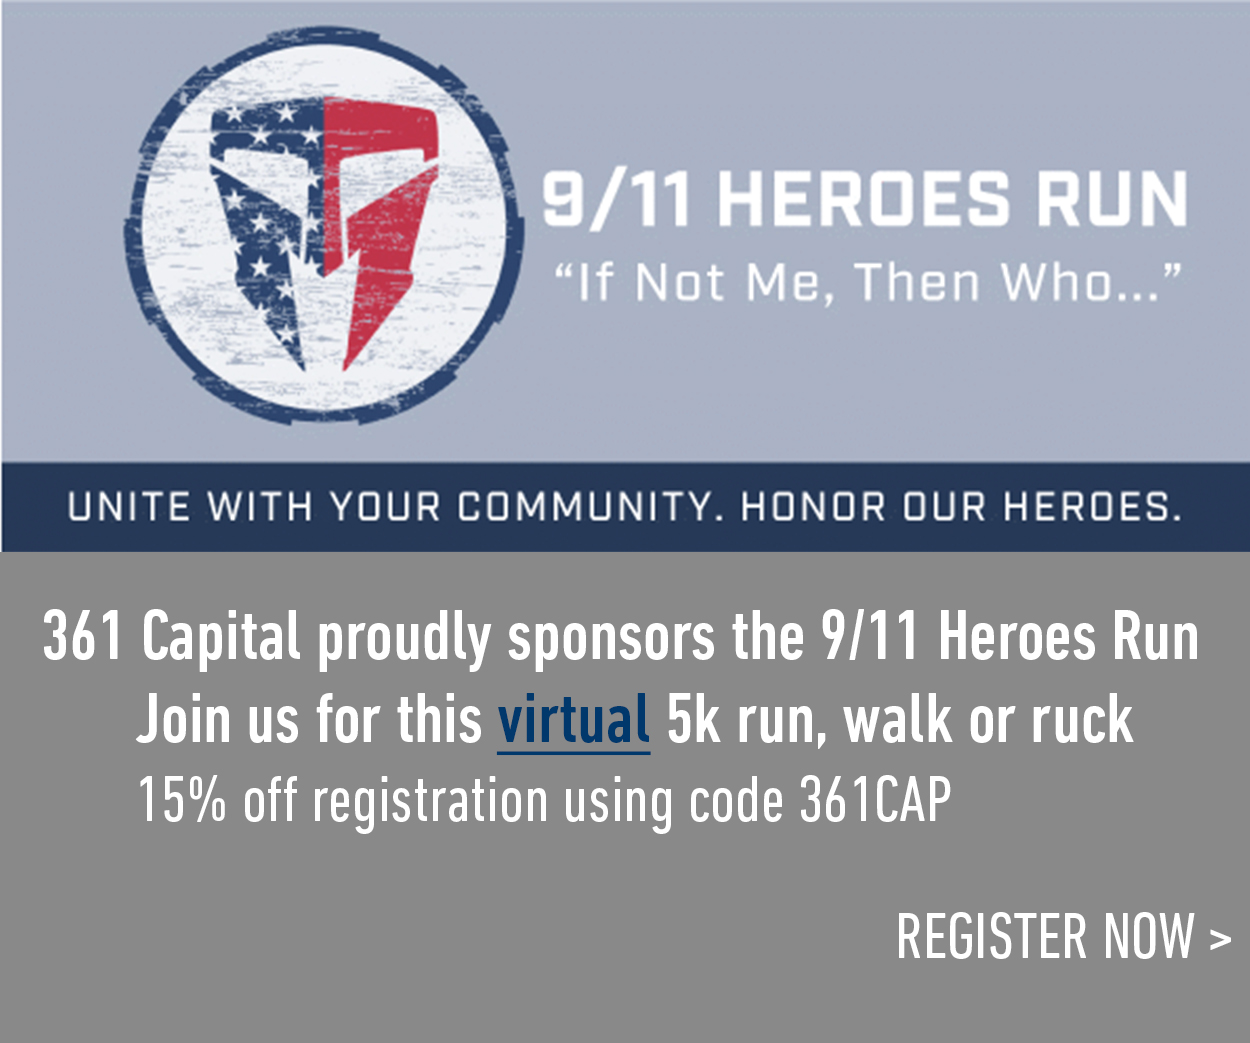 9/11 Heroes Run Denver Race Promo